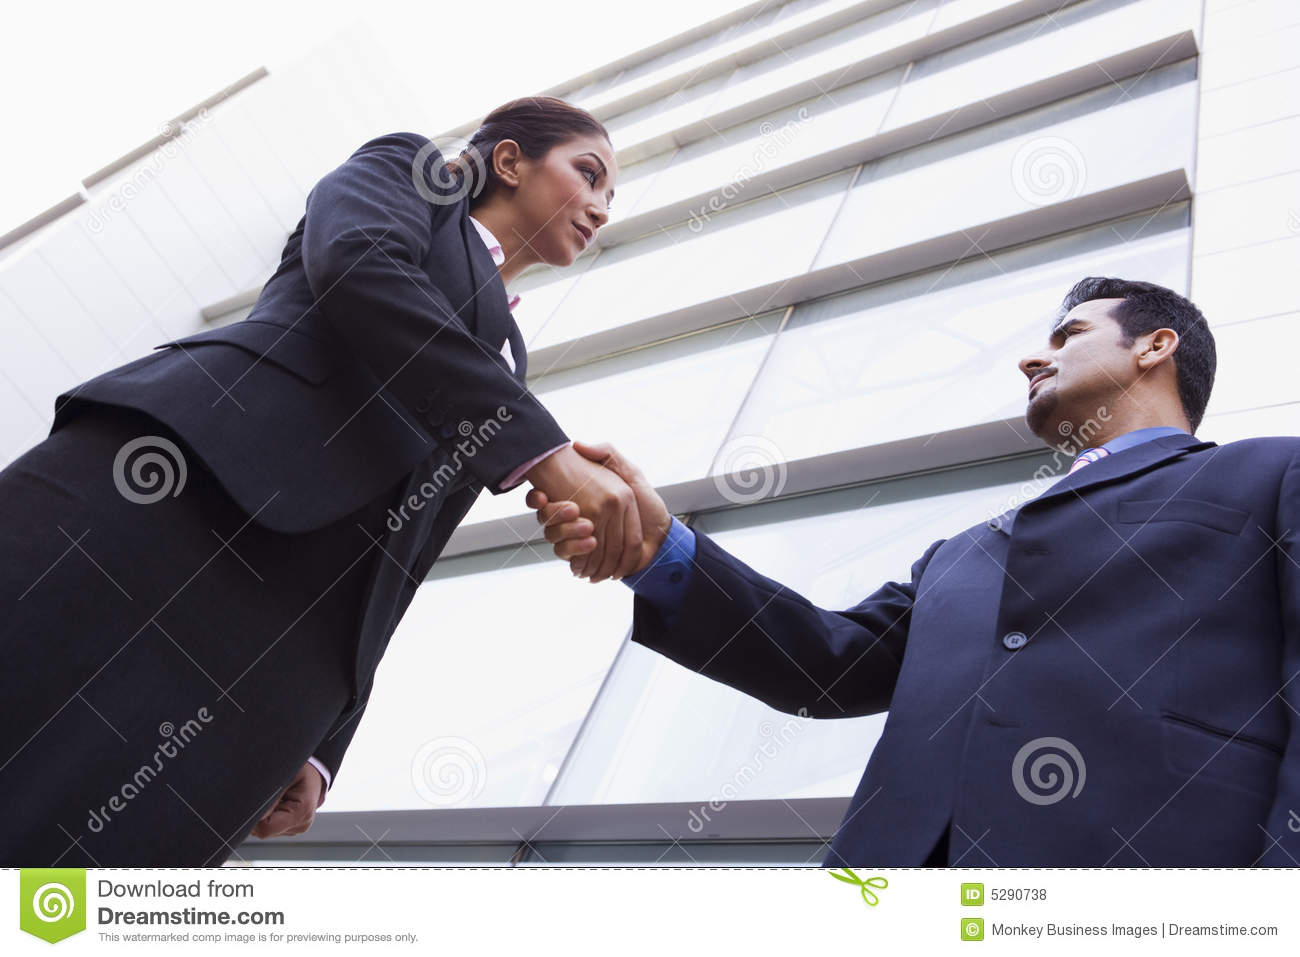 ... Free Stock Photos: Two business people shaking hands outside office